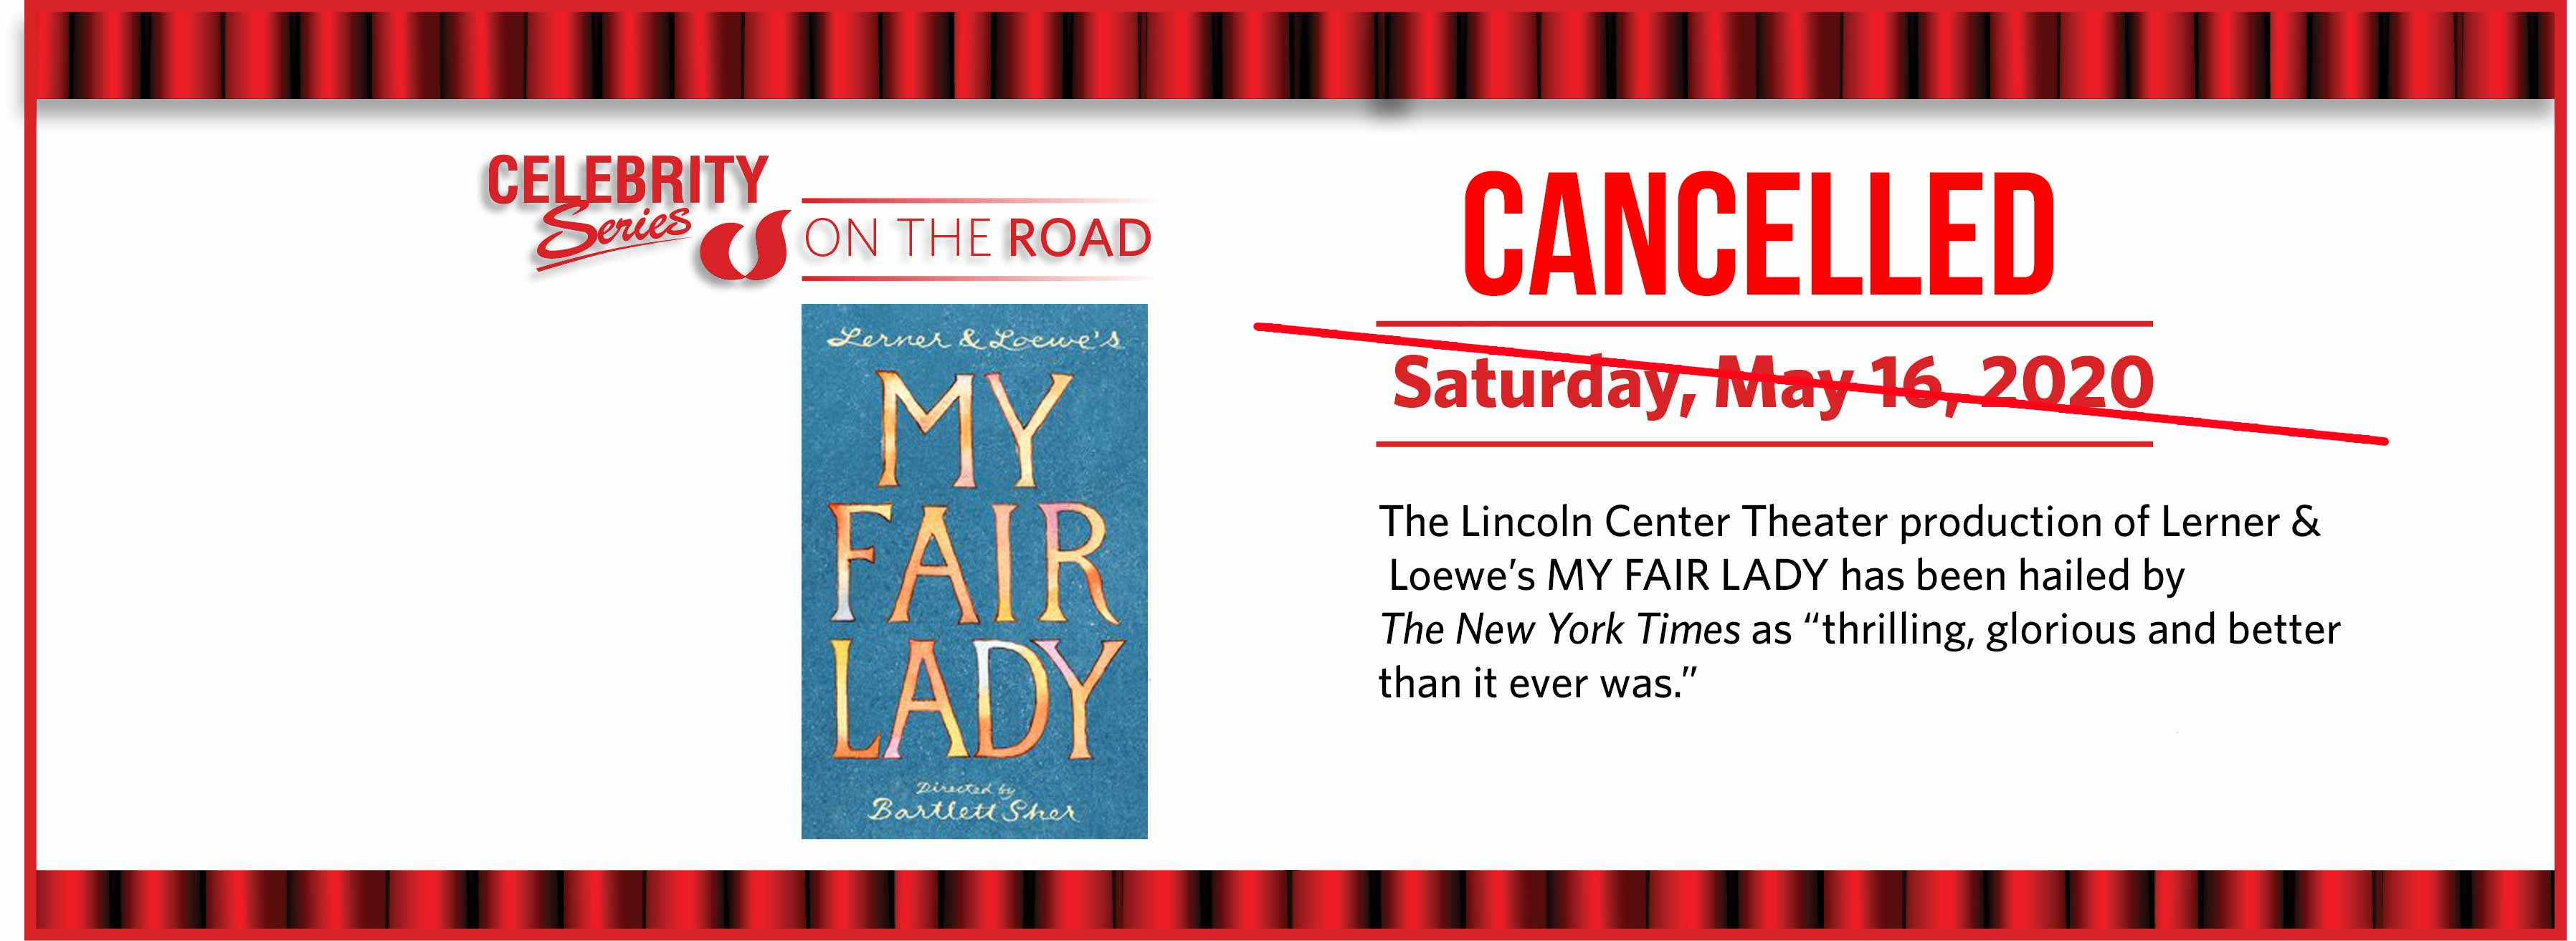 My Fair Lady: Saturday, May 16, 2020